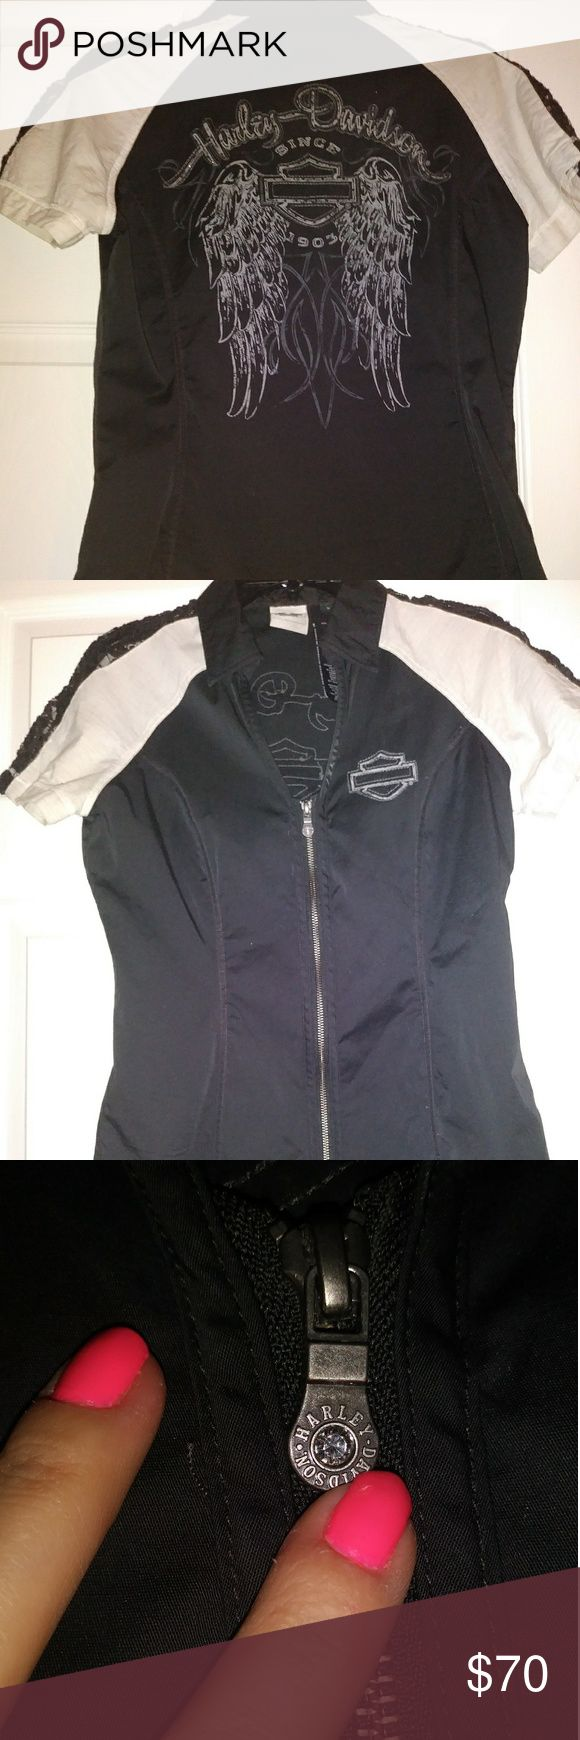 Women's harley zip up shop shirt Black and cream Harley shirt, black lace on the arm's with zippered front and rhinestones on the back. Only wore once! This is super cute and hate to get rid of it but quit riding recently. My loss is definitely your gain... Can be worn all by it's self or with cami underneath. Harley-Davidson Tops Tees - Short Sleeve